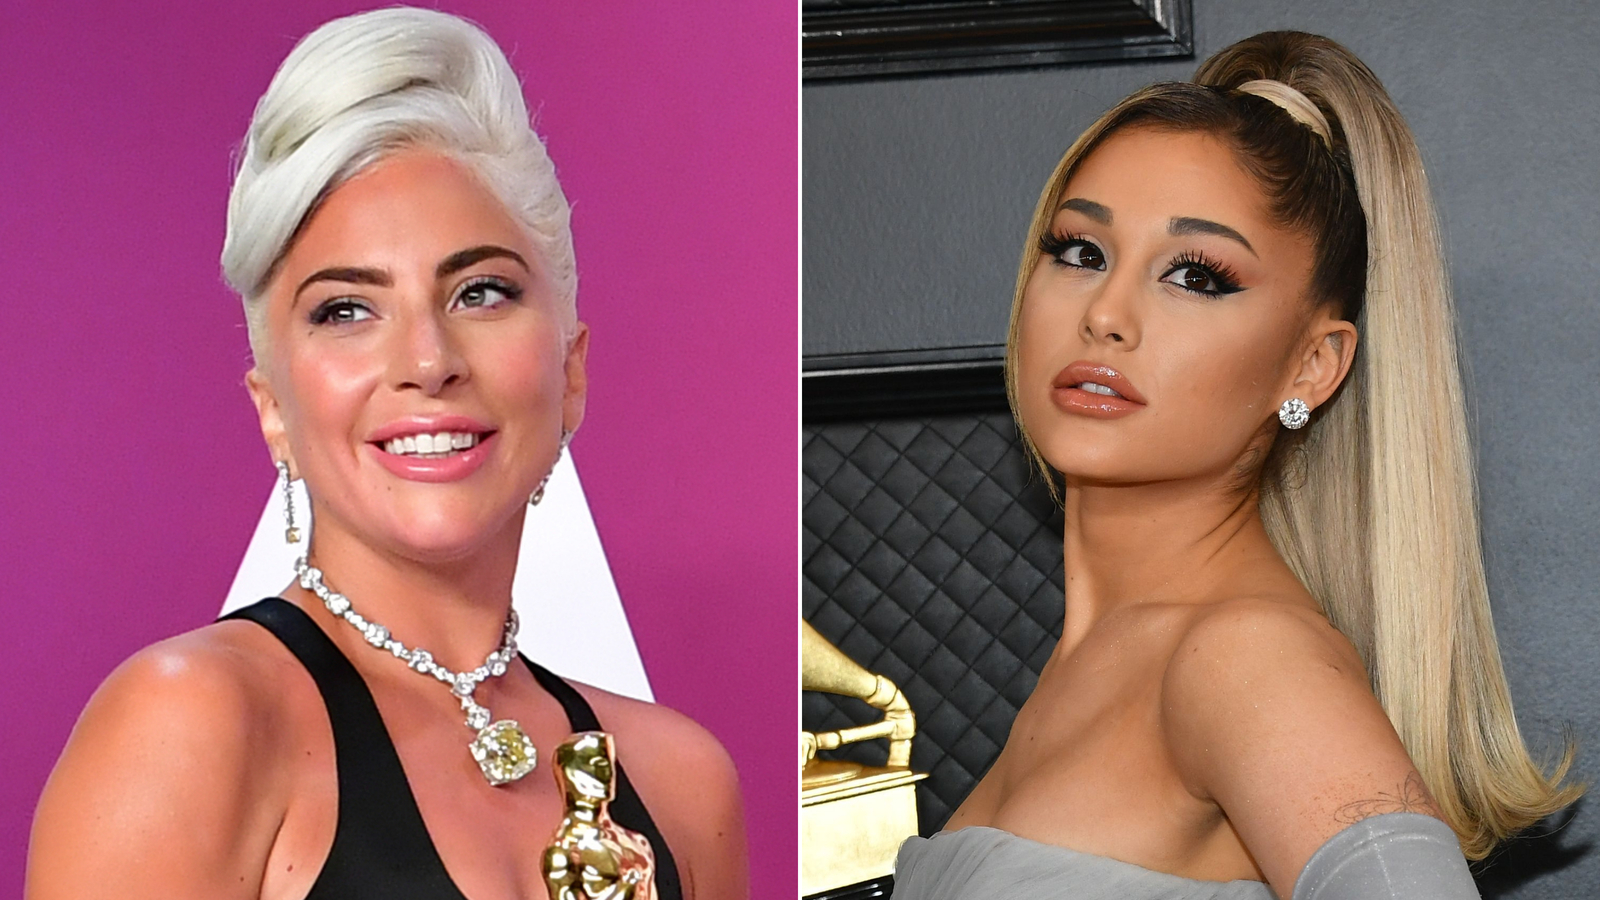 Ariana Grande and Lady Gaga release 'Rain on Me'